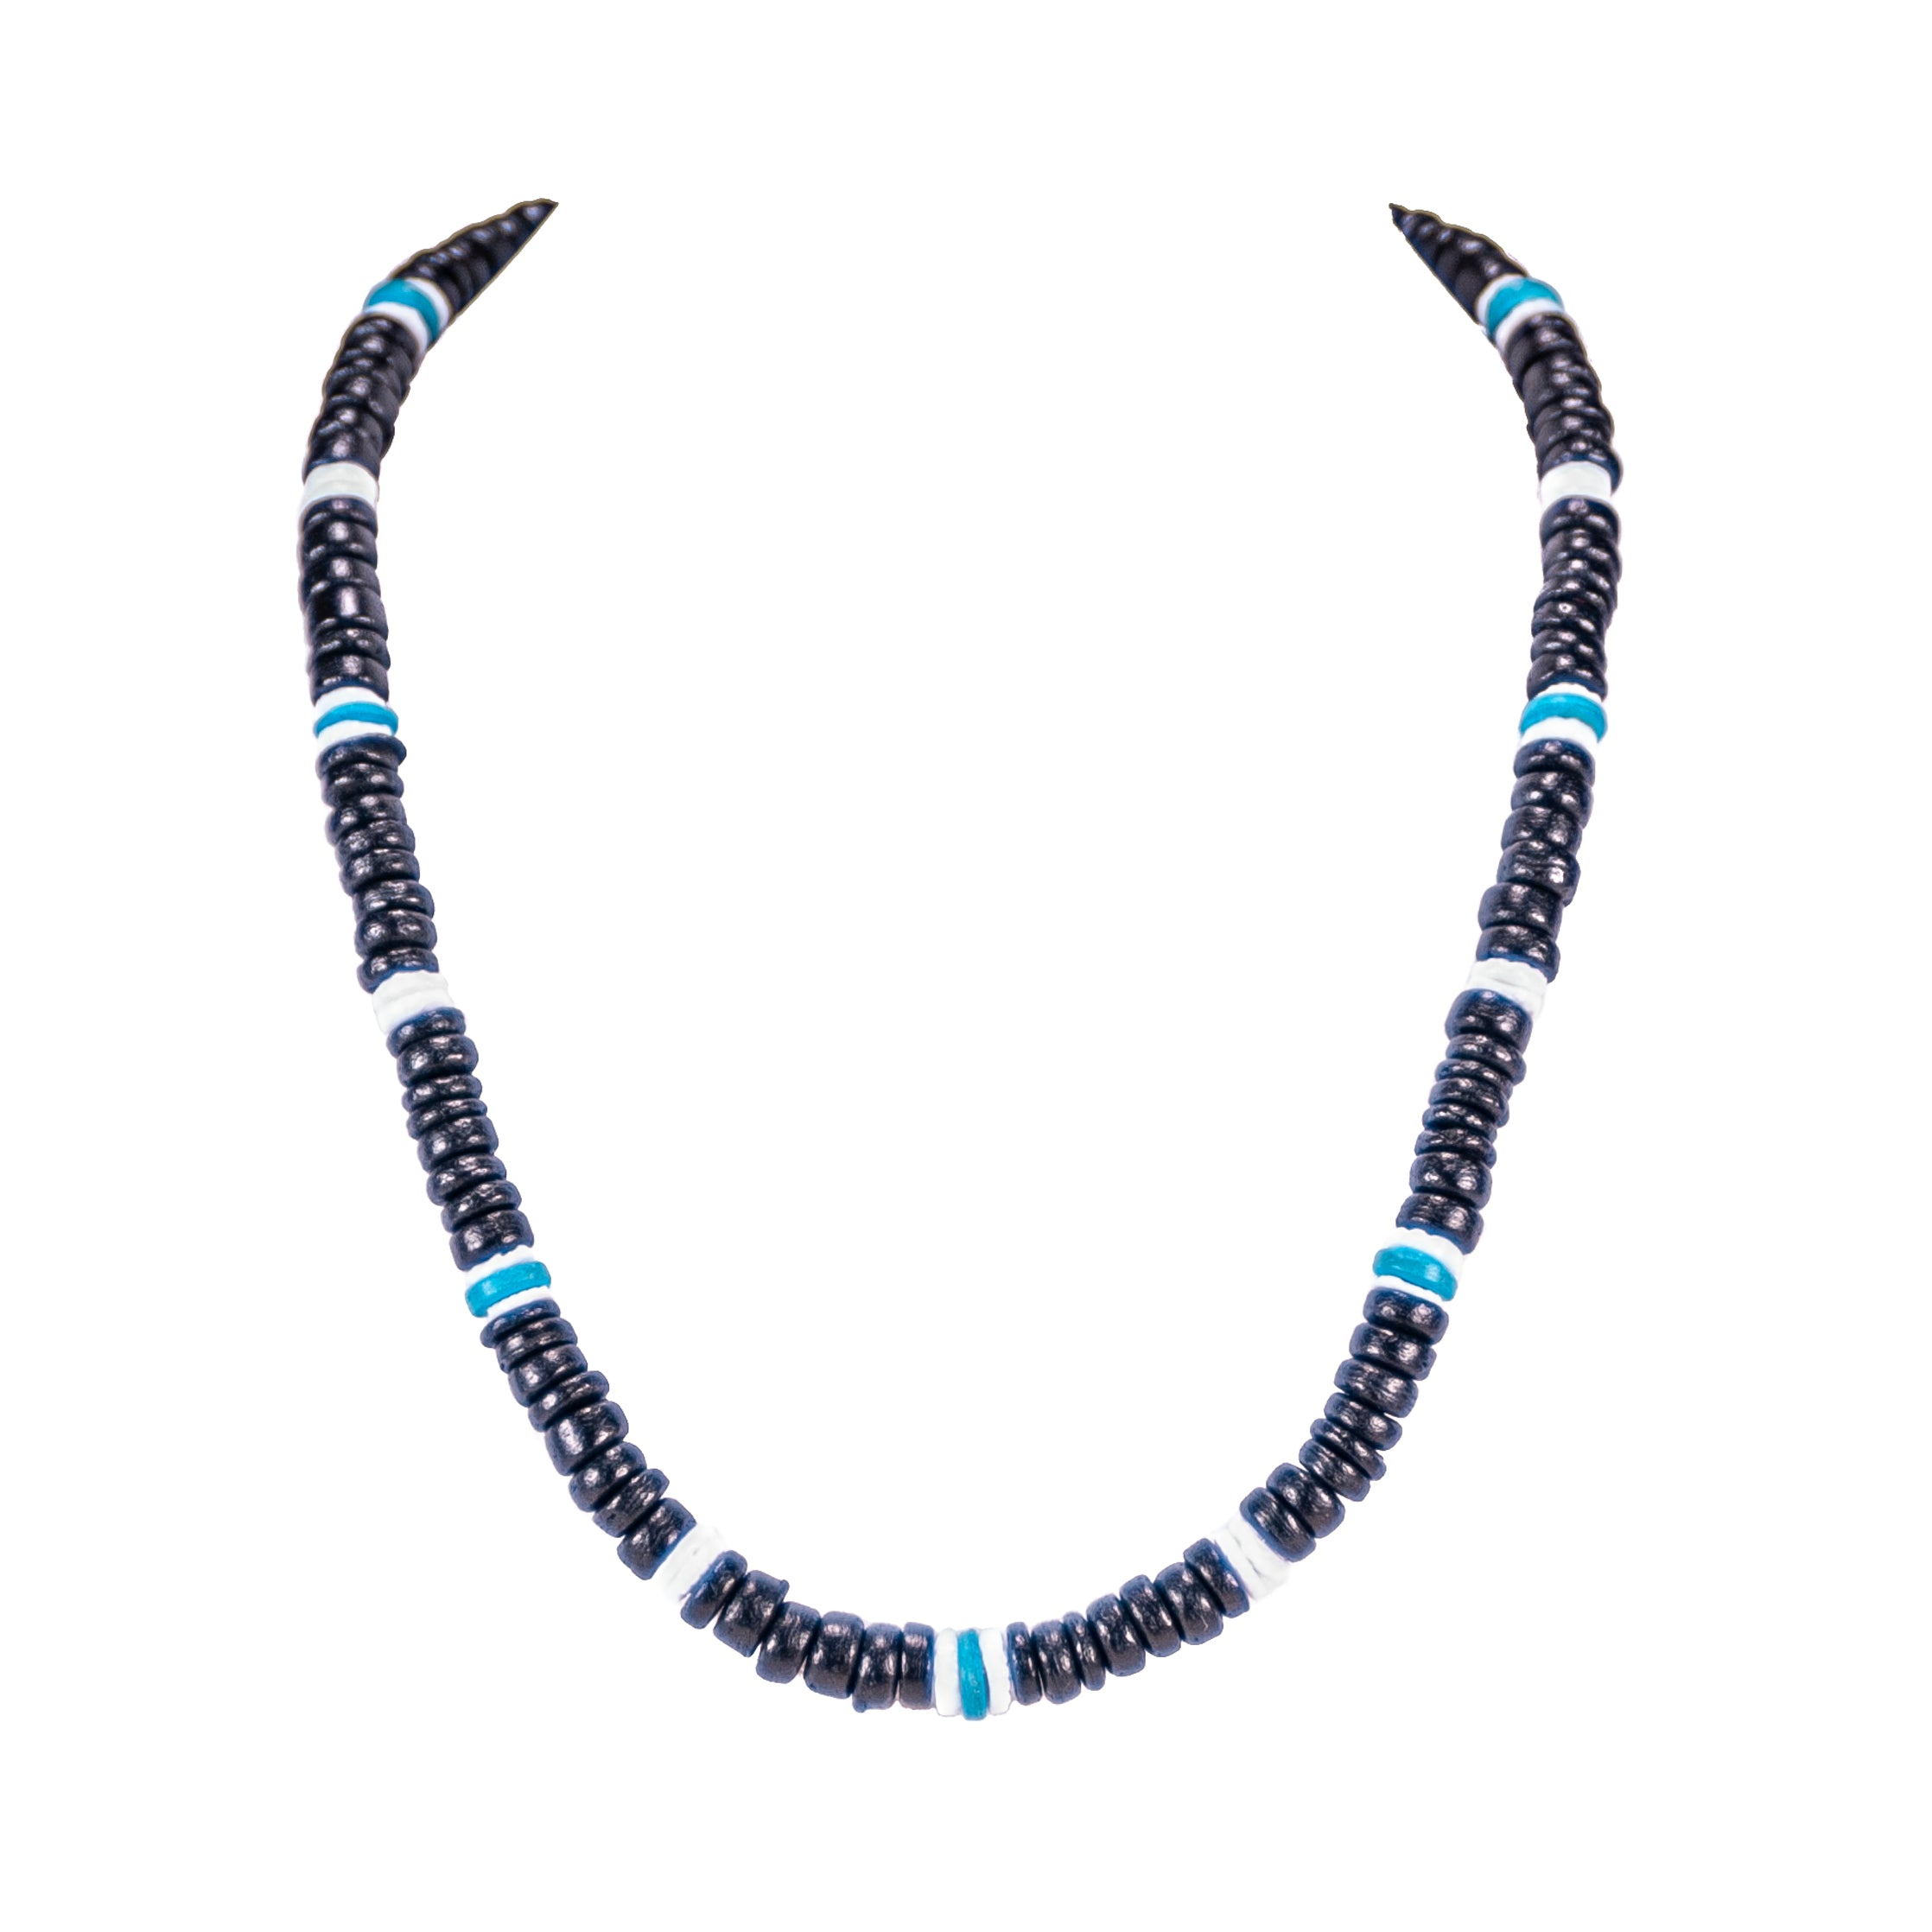 Black & Blue Coconut Beads and Puka Shell Beads Necklace & Bracelet Set